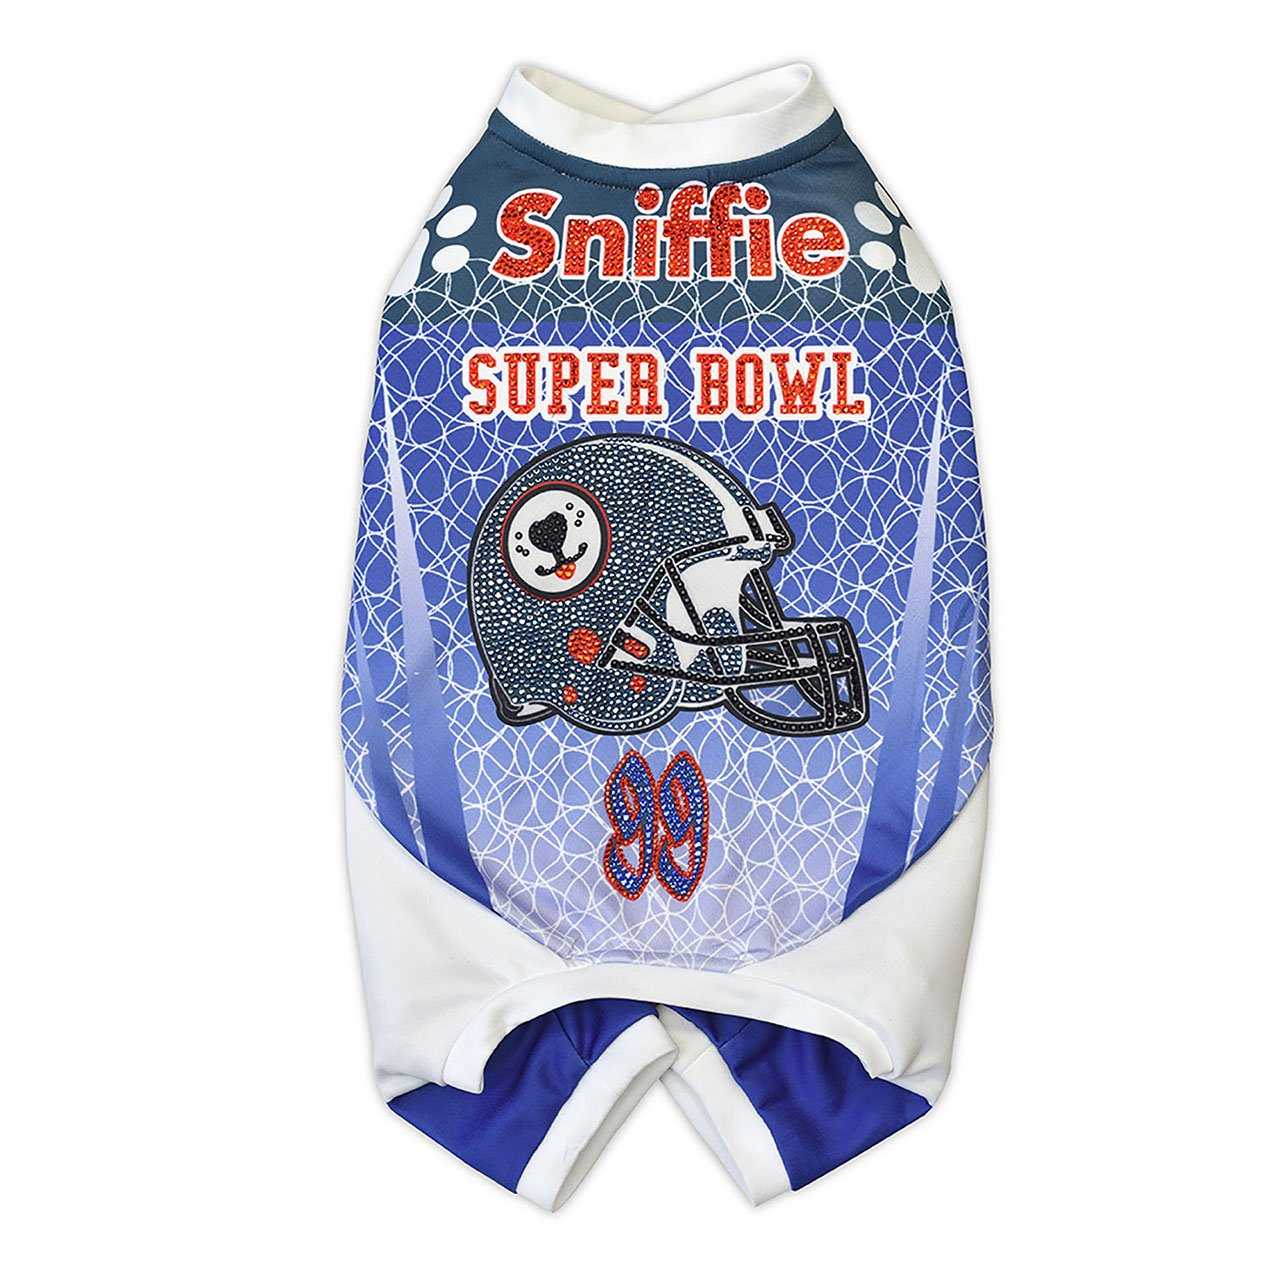 Sniffie Dog Fashion Dog Clothes American Football Padded Sportswear with Crystals